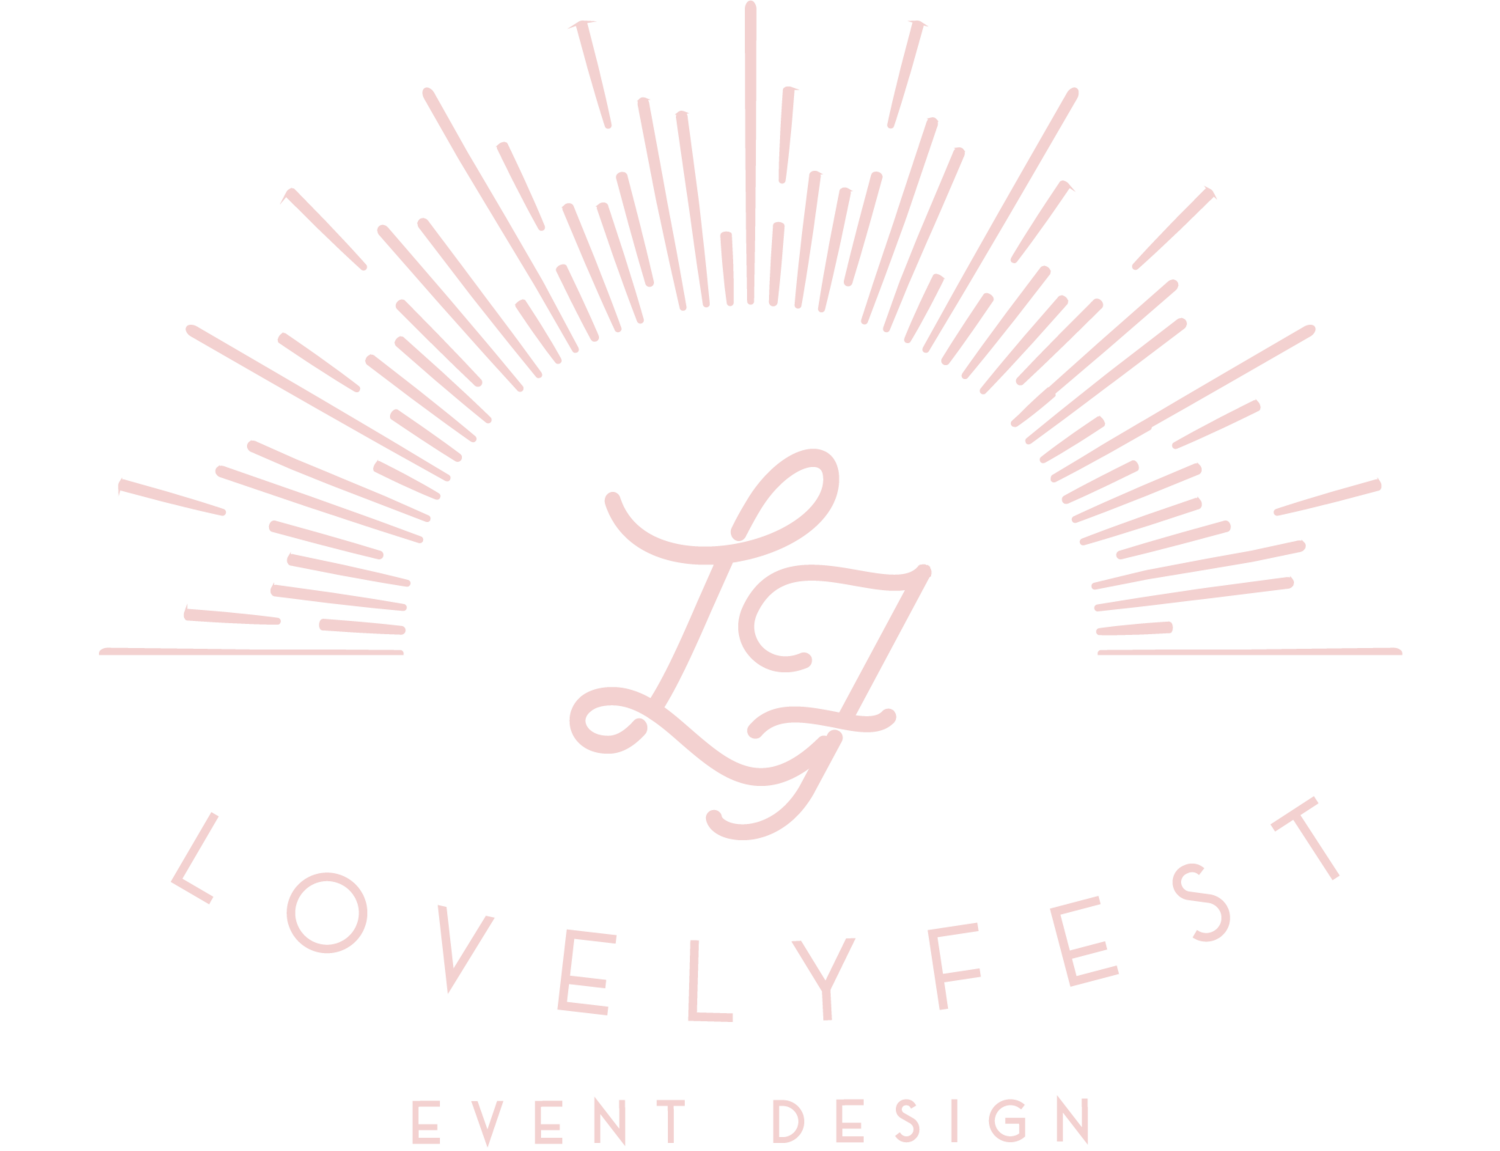 Lovelyfest Event Design and Wedding Planning Based in San Luis Obispo and Orange County California